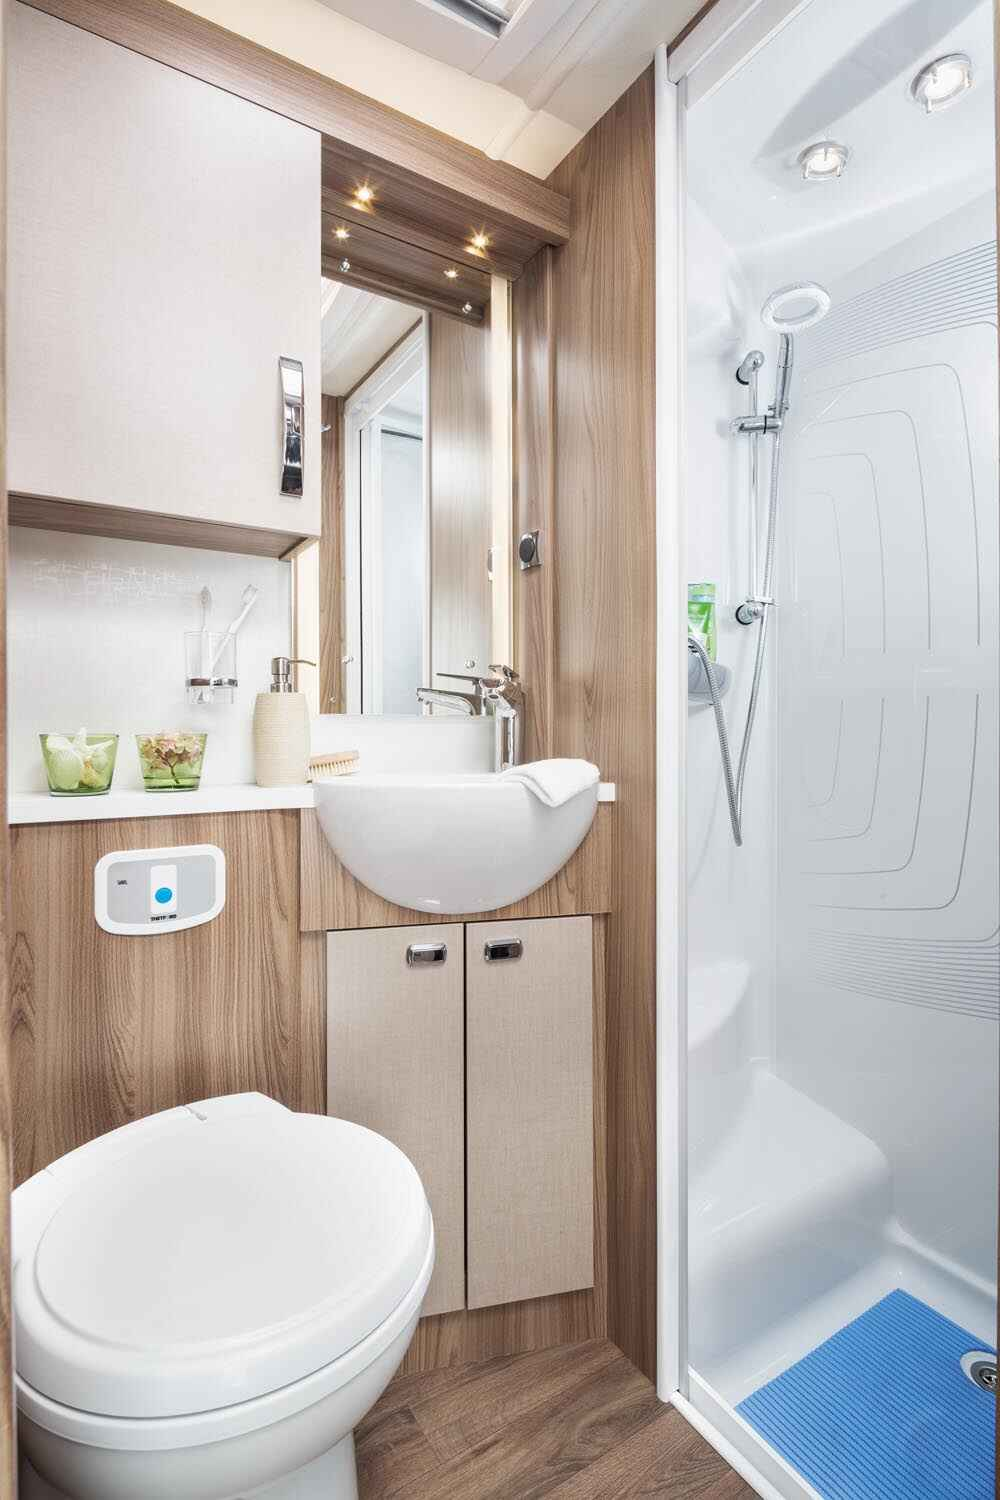 Iconic Motorhomes all have on-board shower and toilet facilities and are fully self-contained